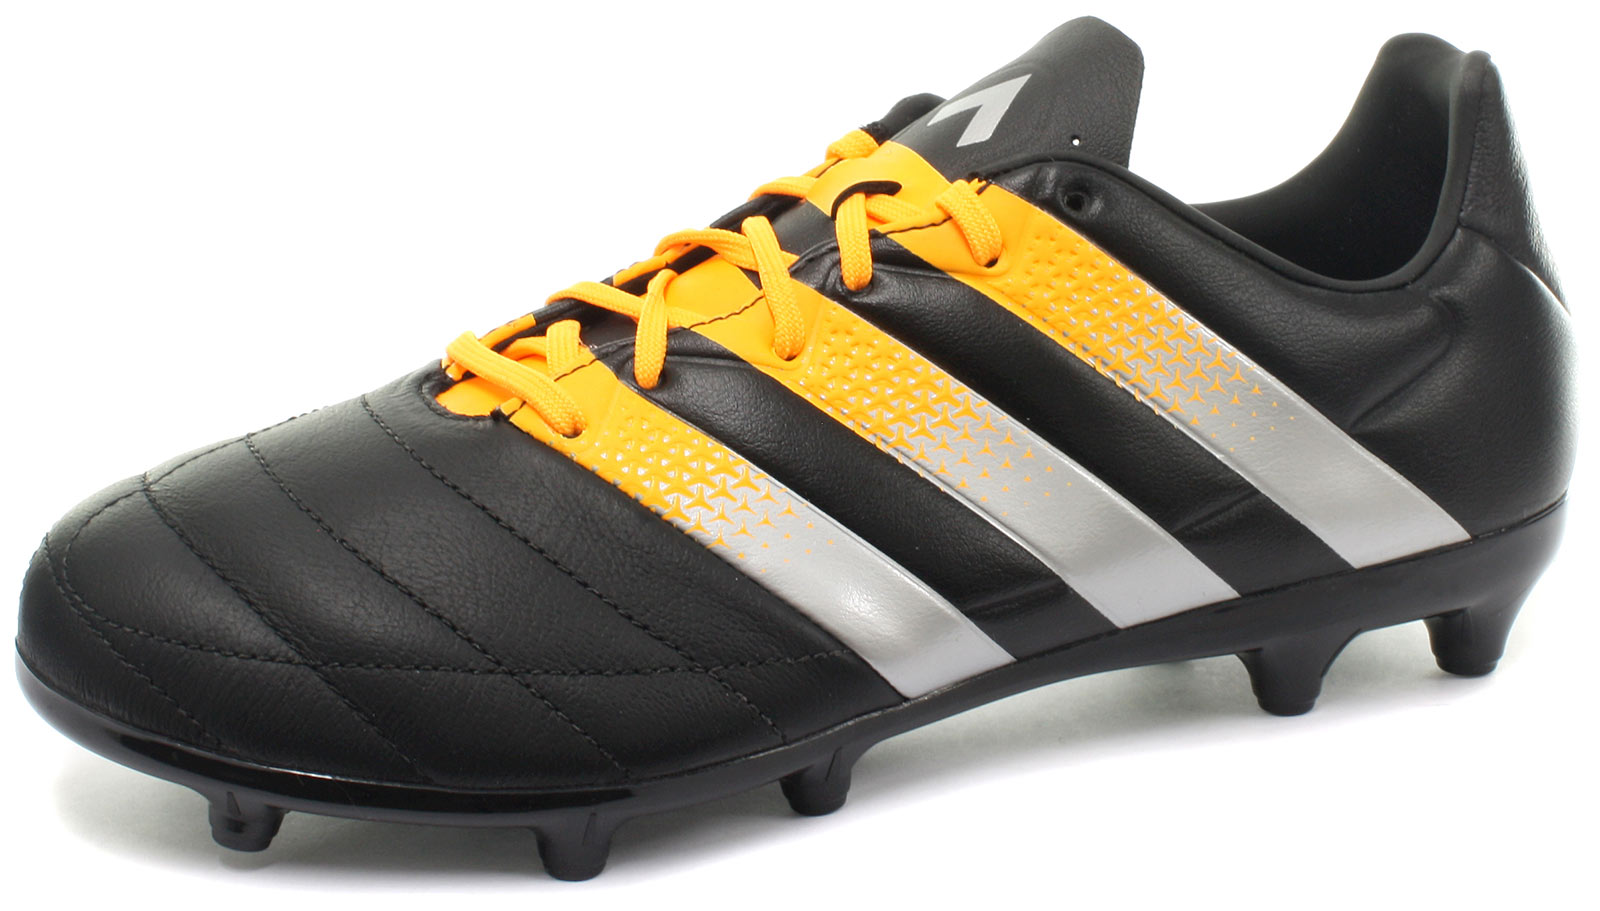 adidas Ace 16.3 FG/AG Leather Mens Football Boots / Soccer Cleats